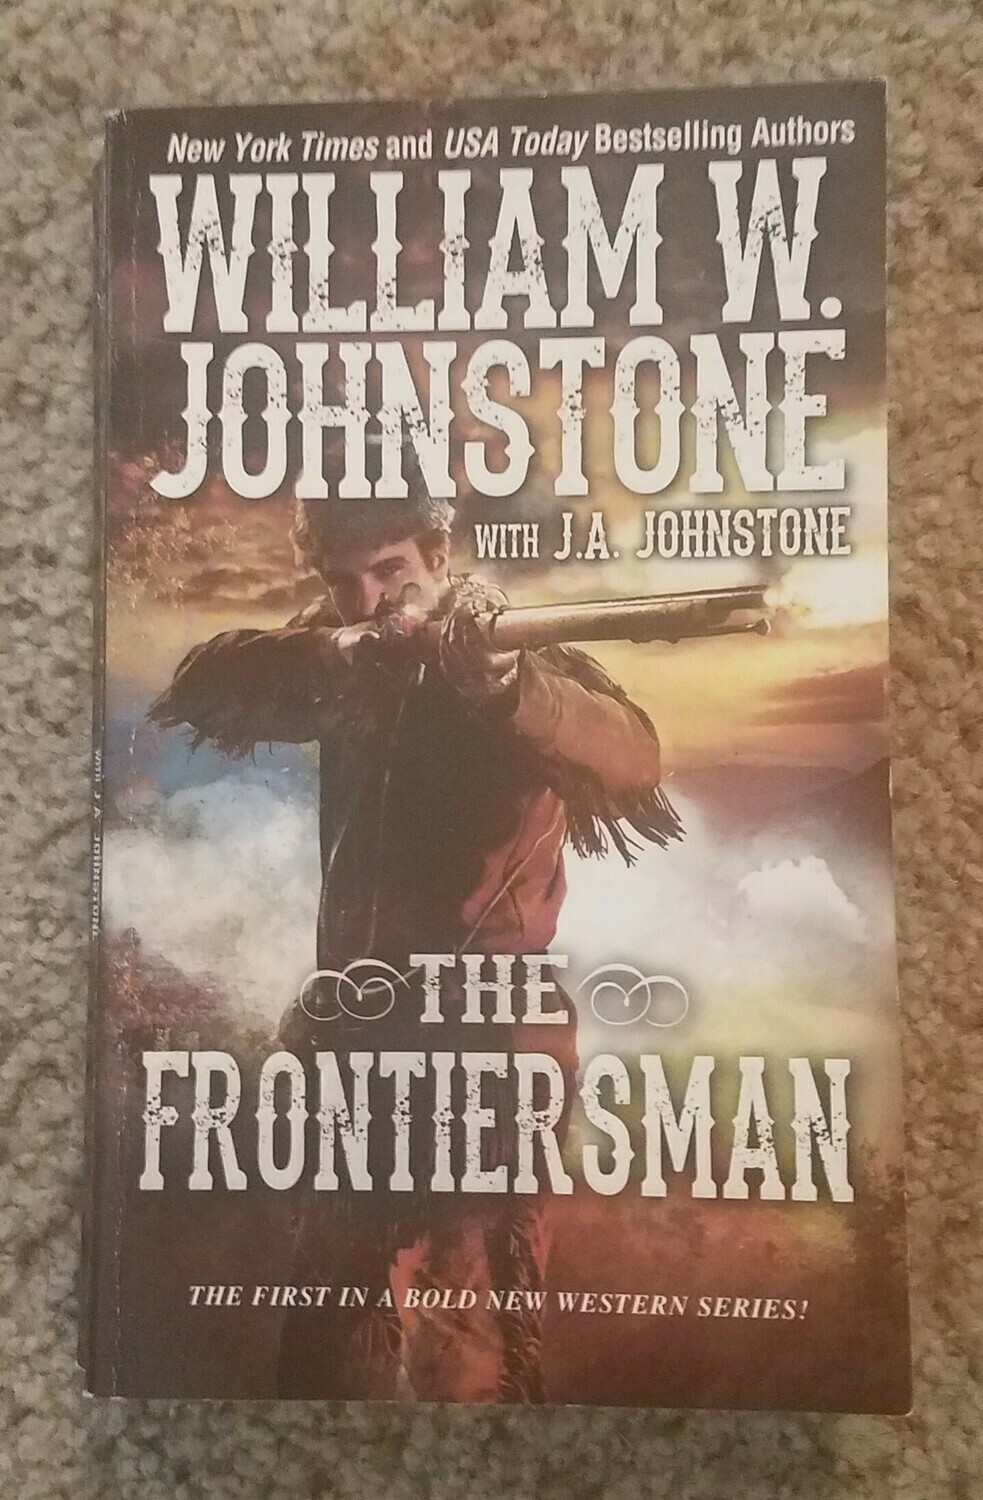 The Frontiersman by William W. Johnstone with J.A. Johnstone